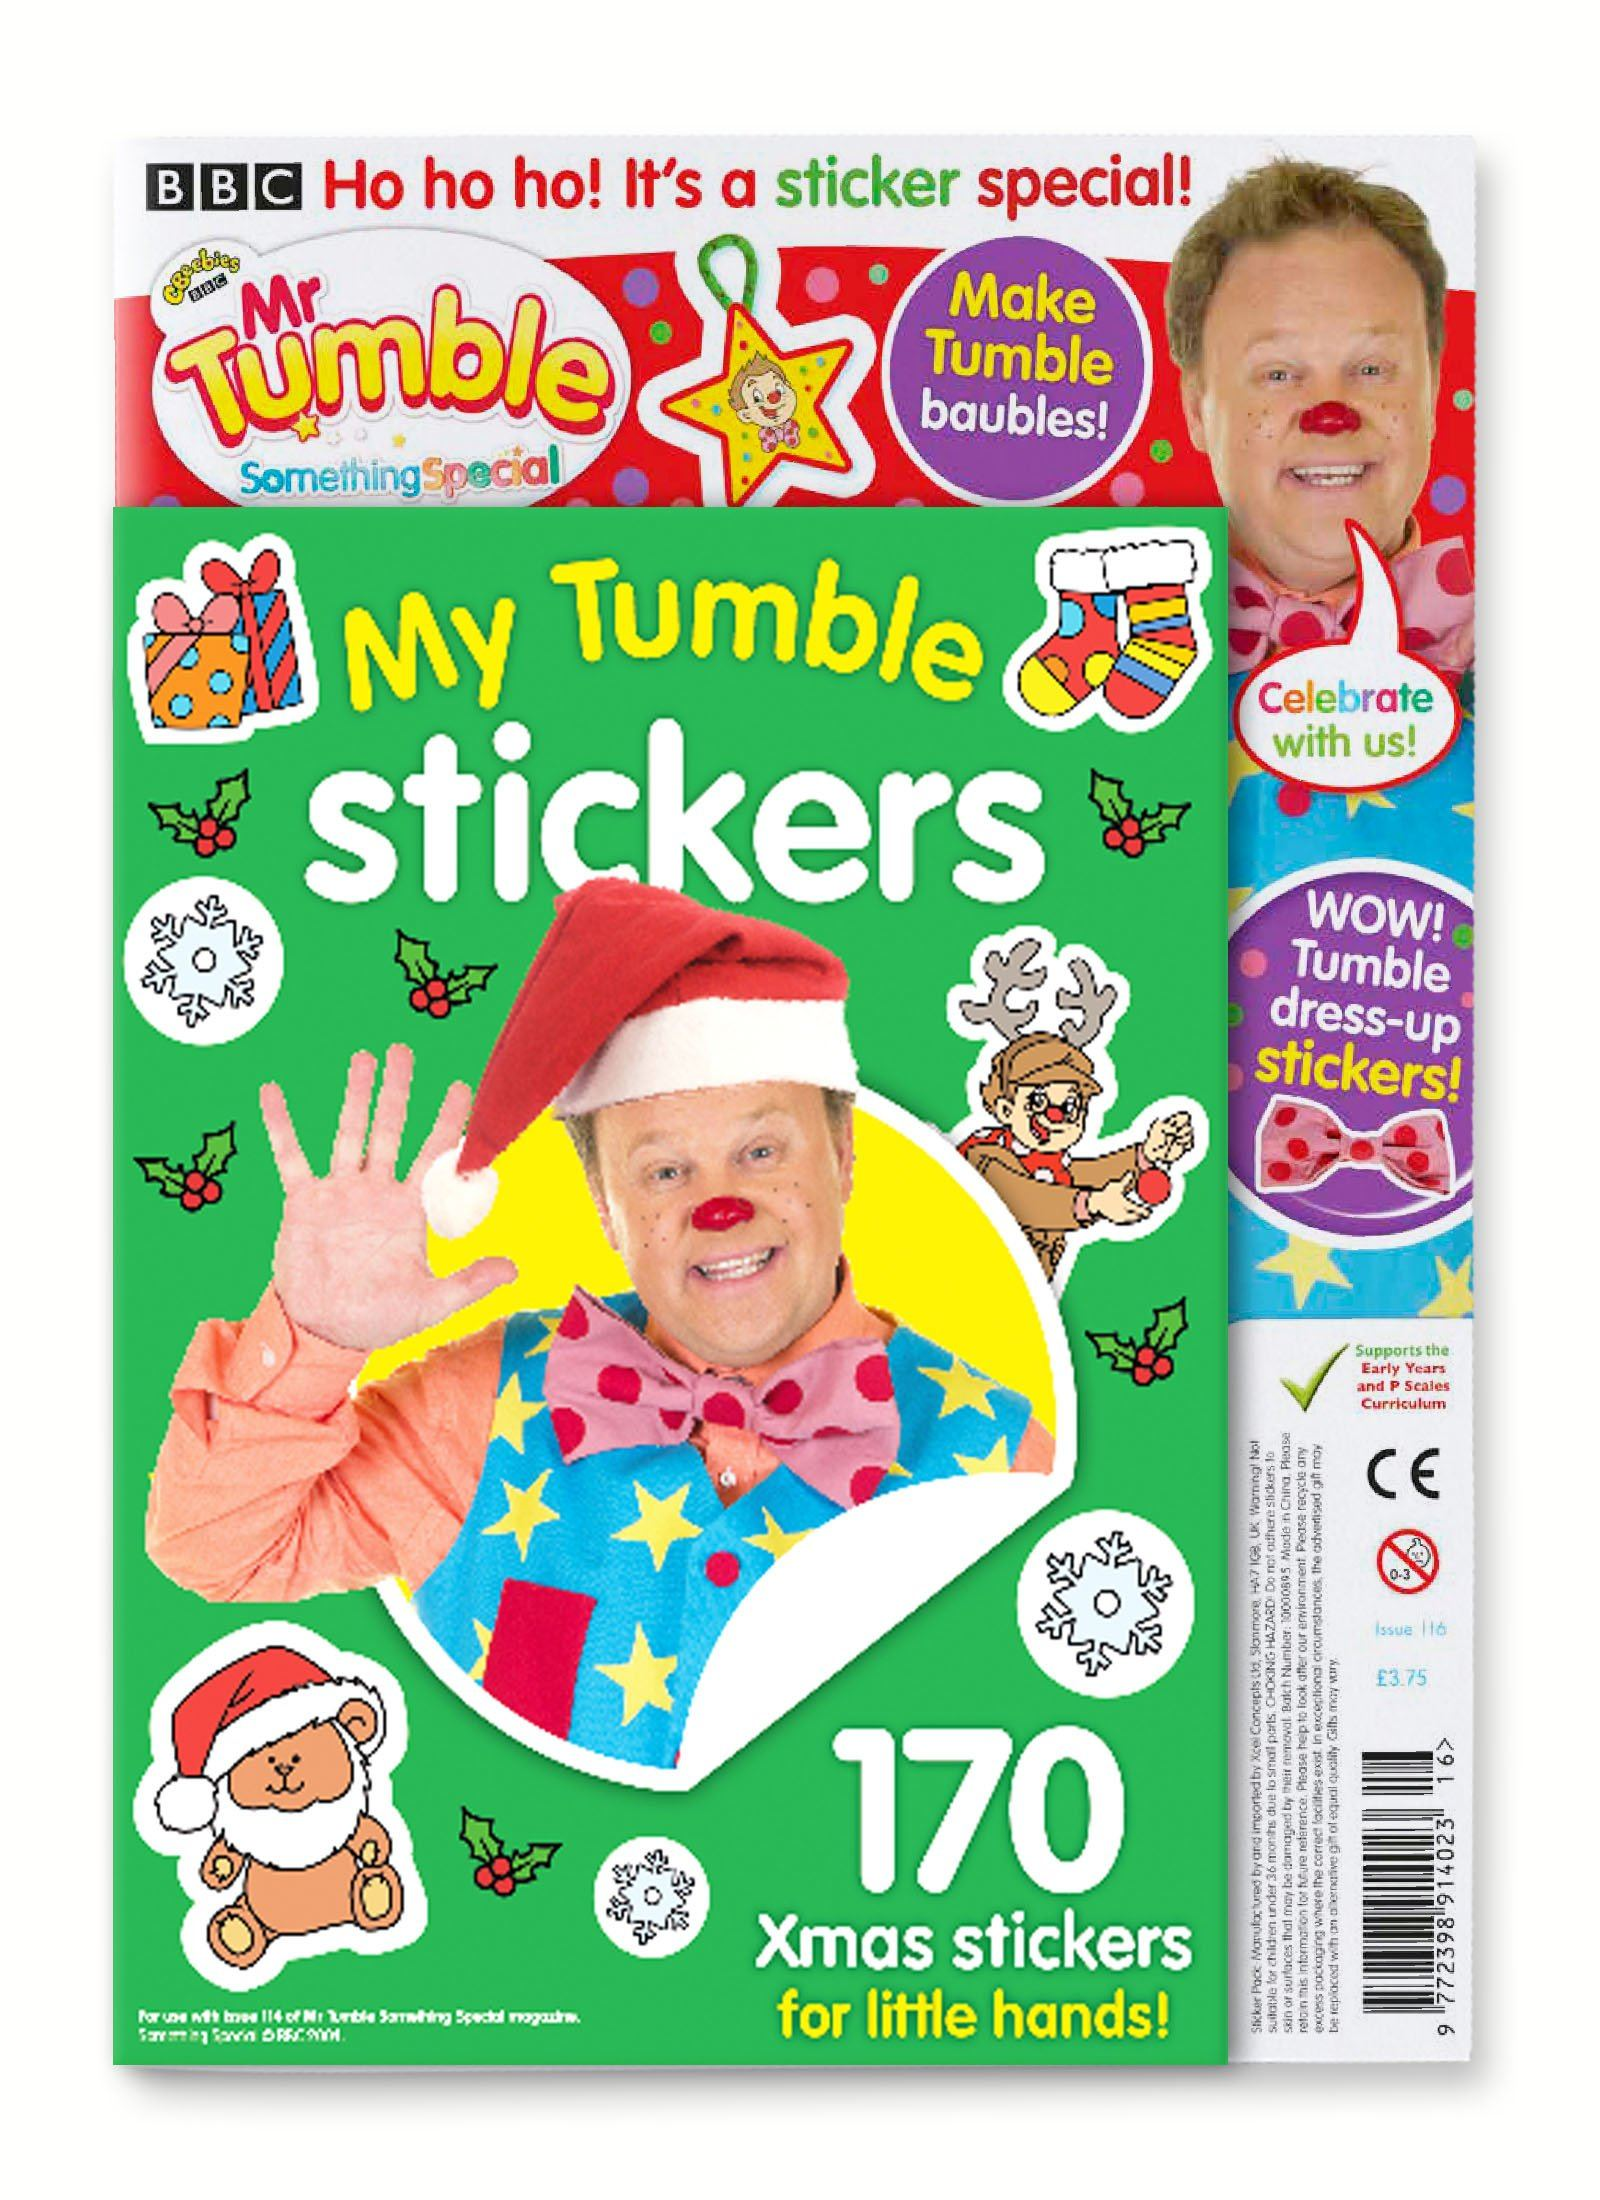 Something Special Magazine - Issue 116 Gifted Magazine 5 Minute Fun Shop